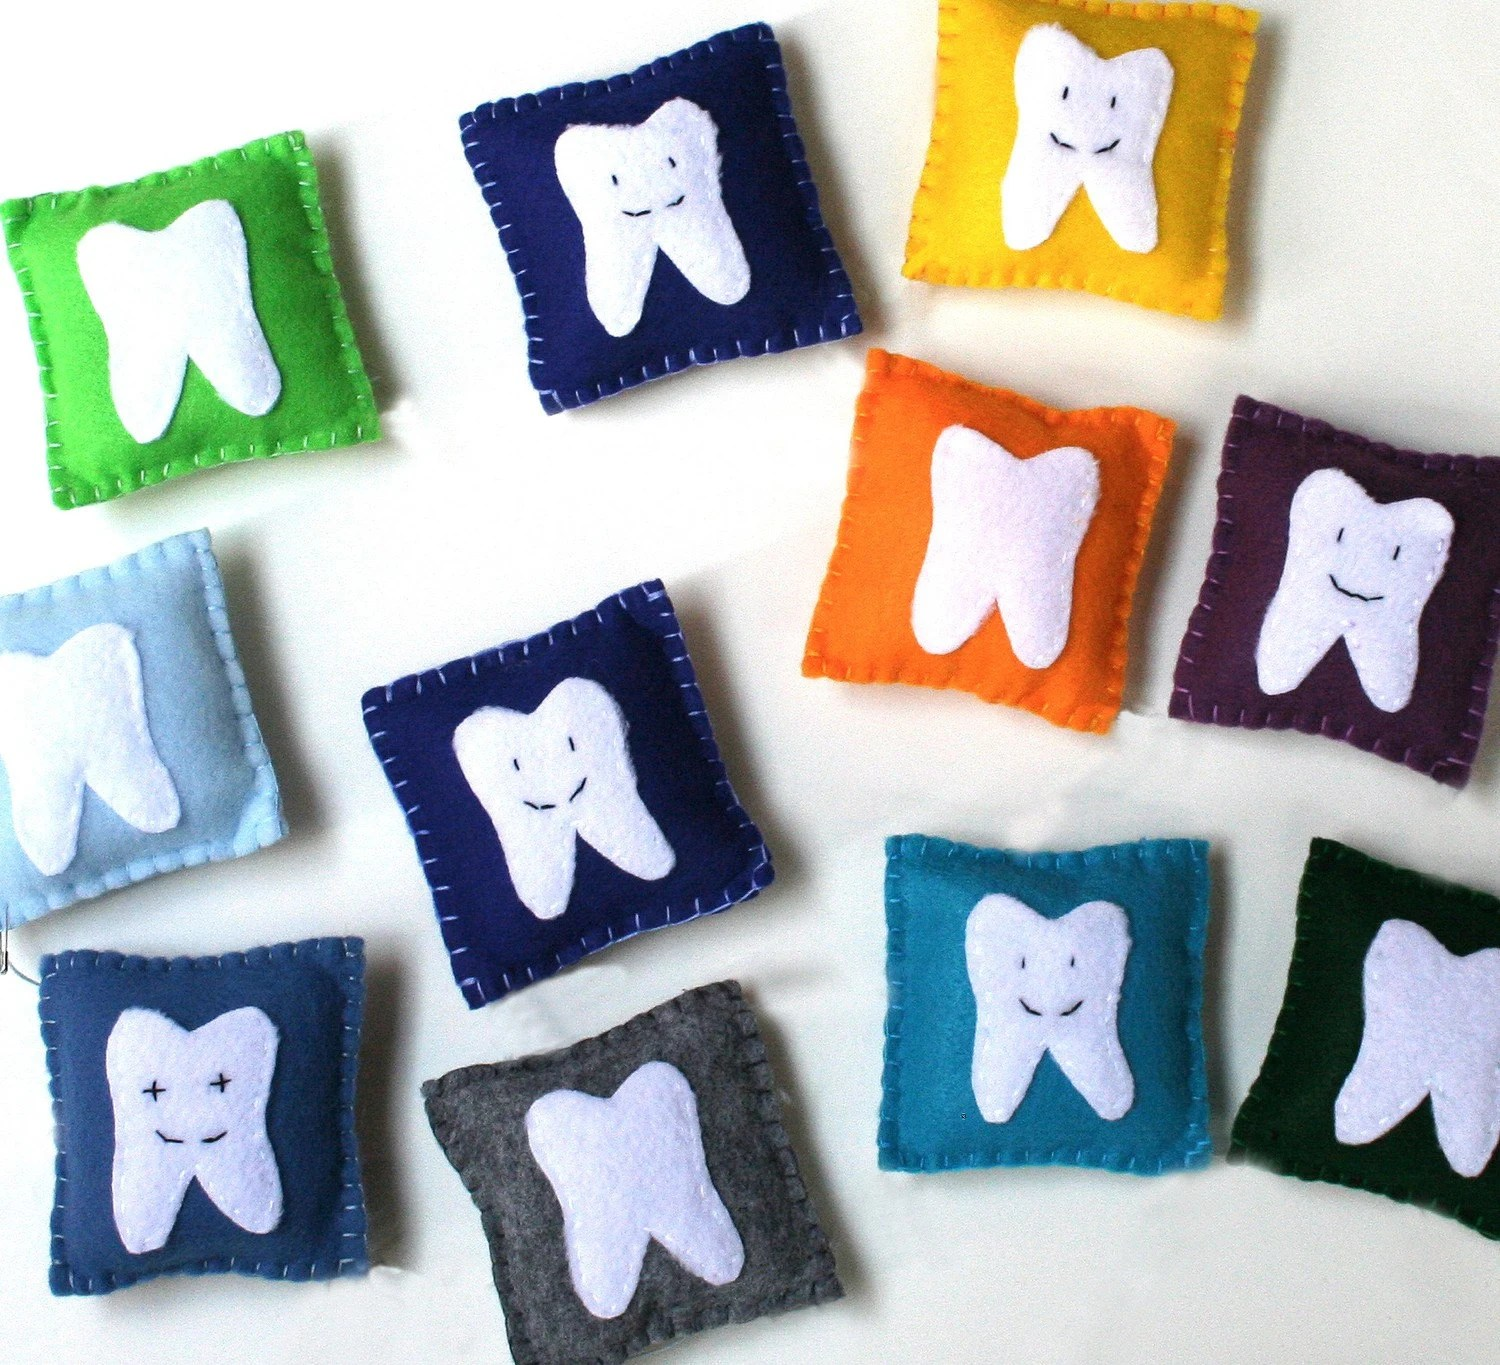 Tooth Fairy Pillow - Fun, Funky and Colorful little pockets for boy's or girl's lost teeth and treasures. - avisandiris